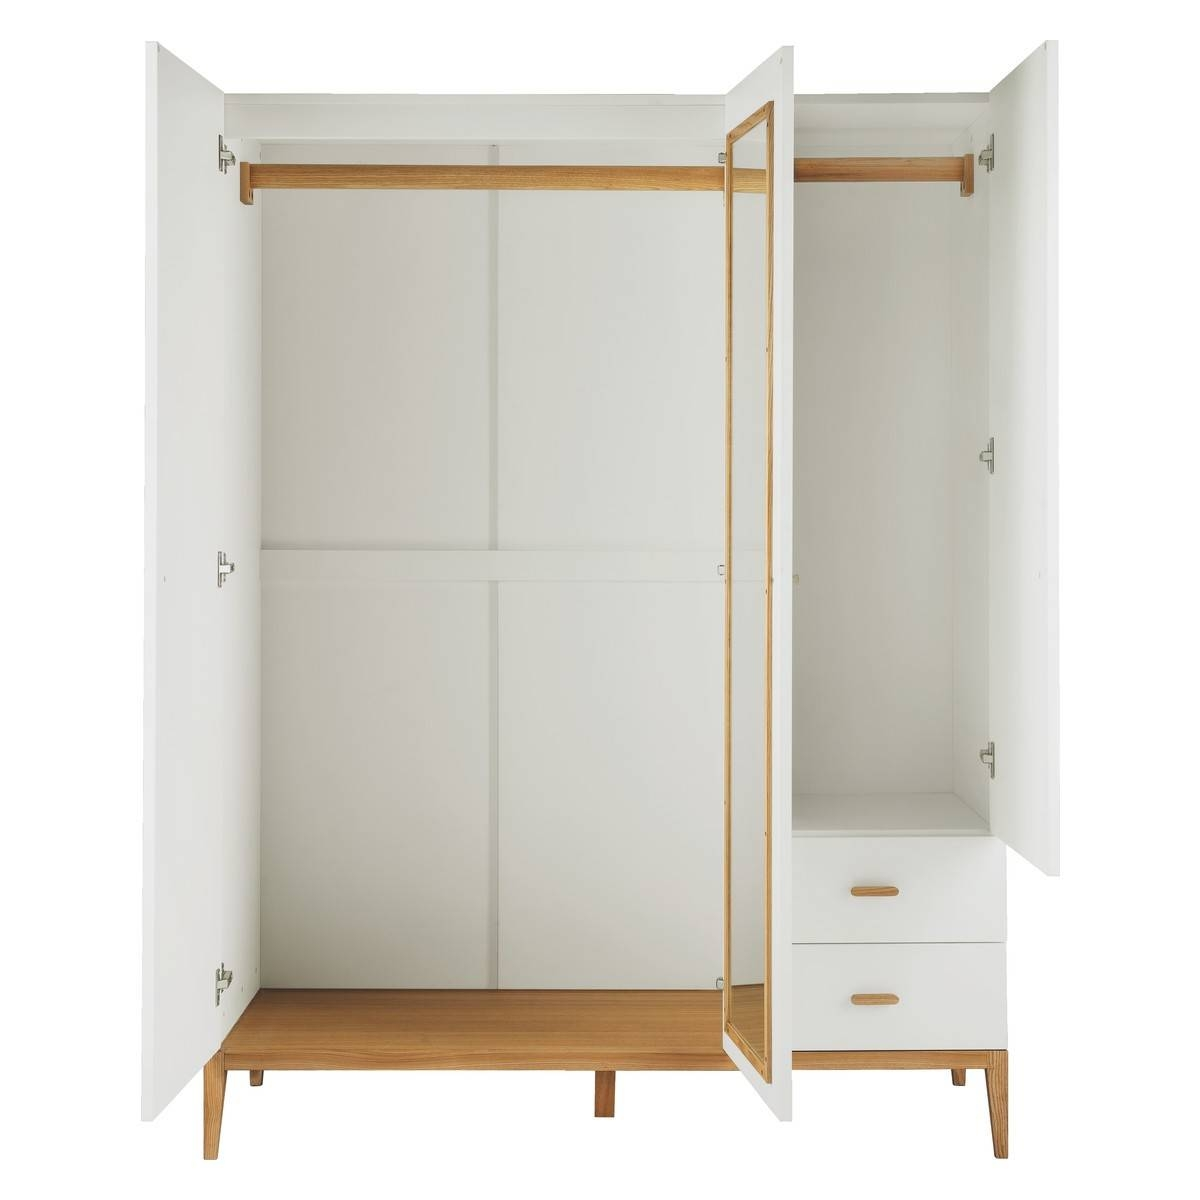 Tatsuma White And Ash 3 Door Wardrobe | Buy Now At Habitat Uk throughout 3 Door White Wardrobes (Image 28 of 30)